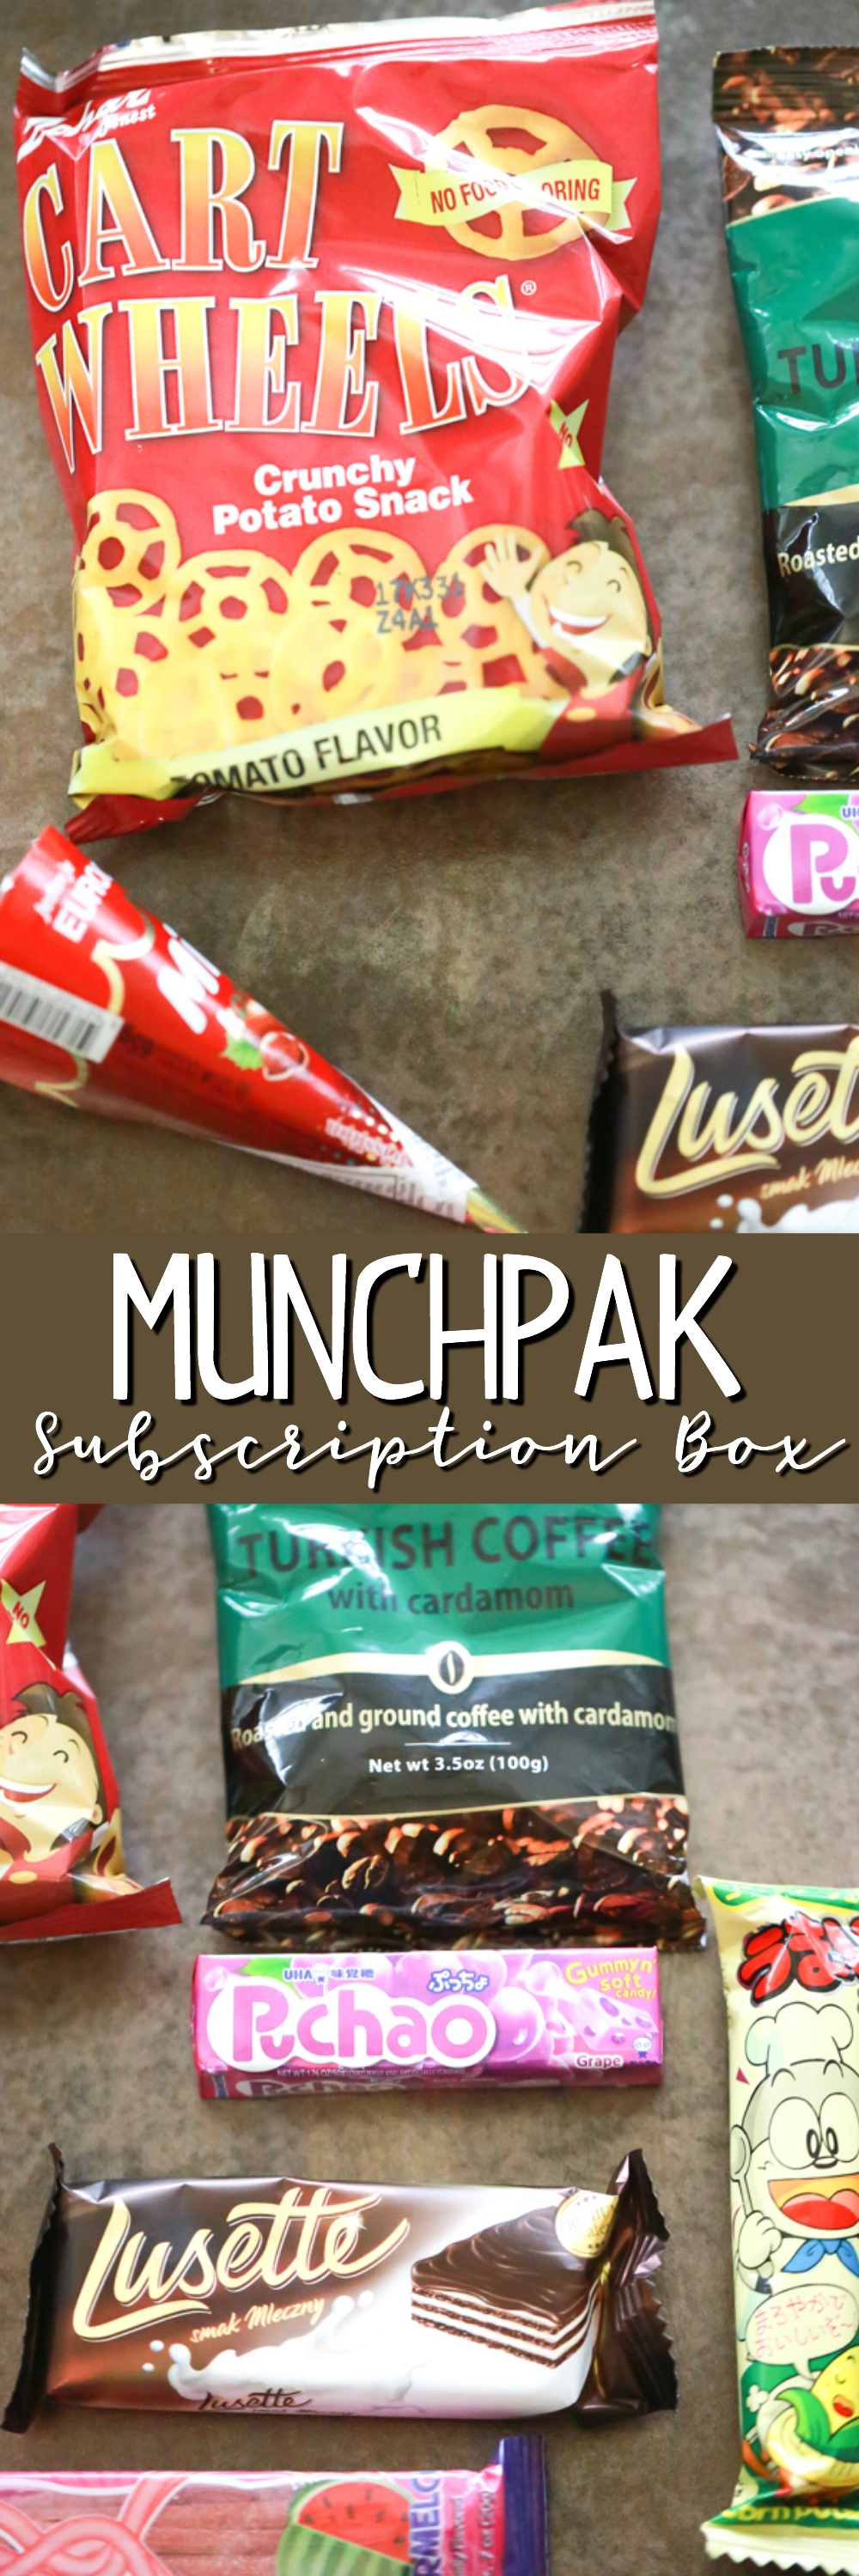 Are you a snacker? For a unique, out of the ordinary snack experience, try a MunchPak Monthly Subscription Box.